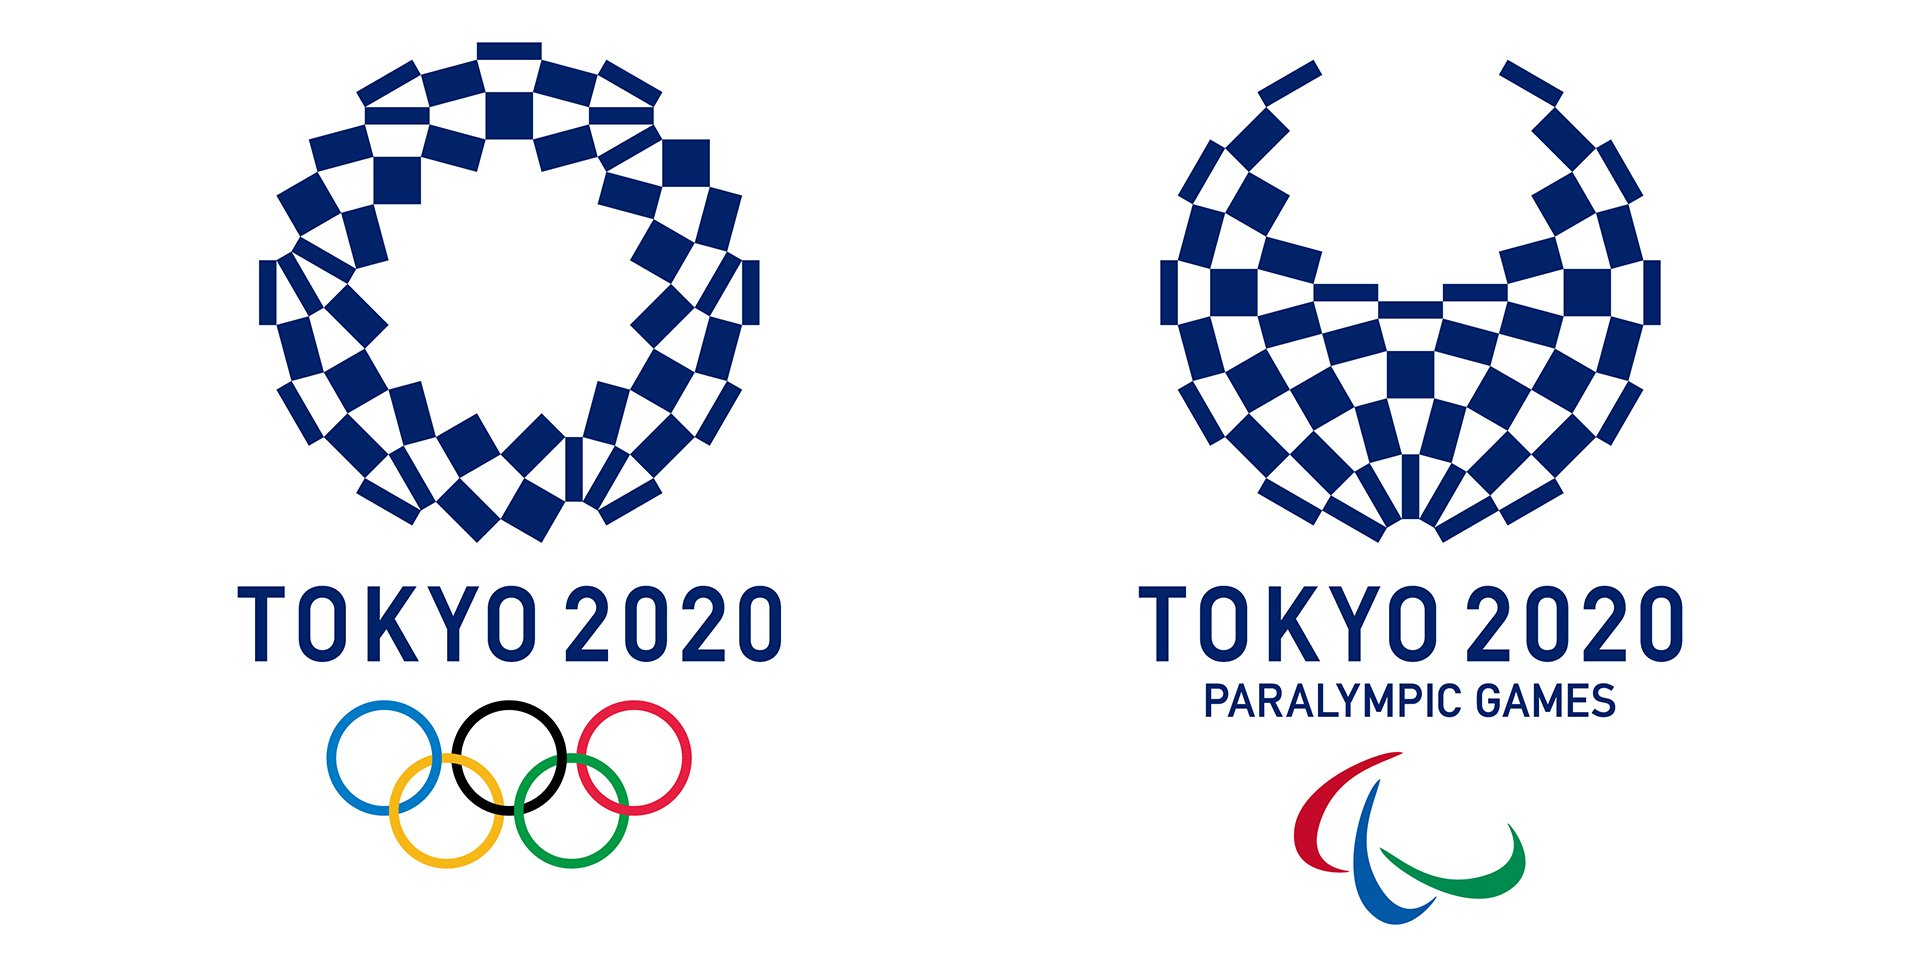 Olympics logo olympics symbol meaning history and evolution the symbol for the tokyo 2020 olympic games was created by japanese graphic designer kenjiro sano one of its characteristic features is a red circle biocorpaavc Images